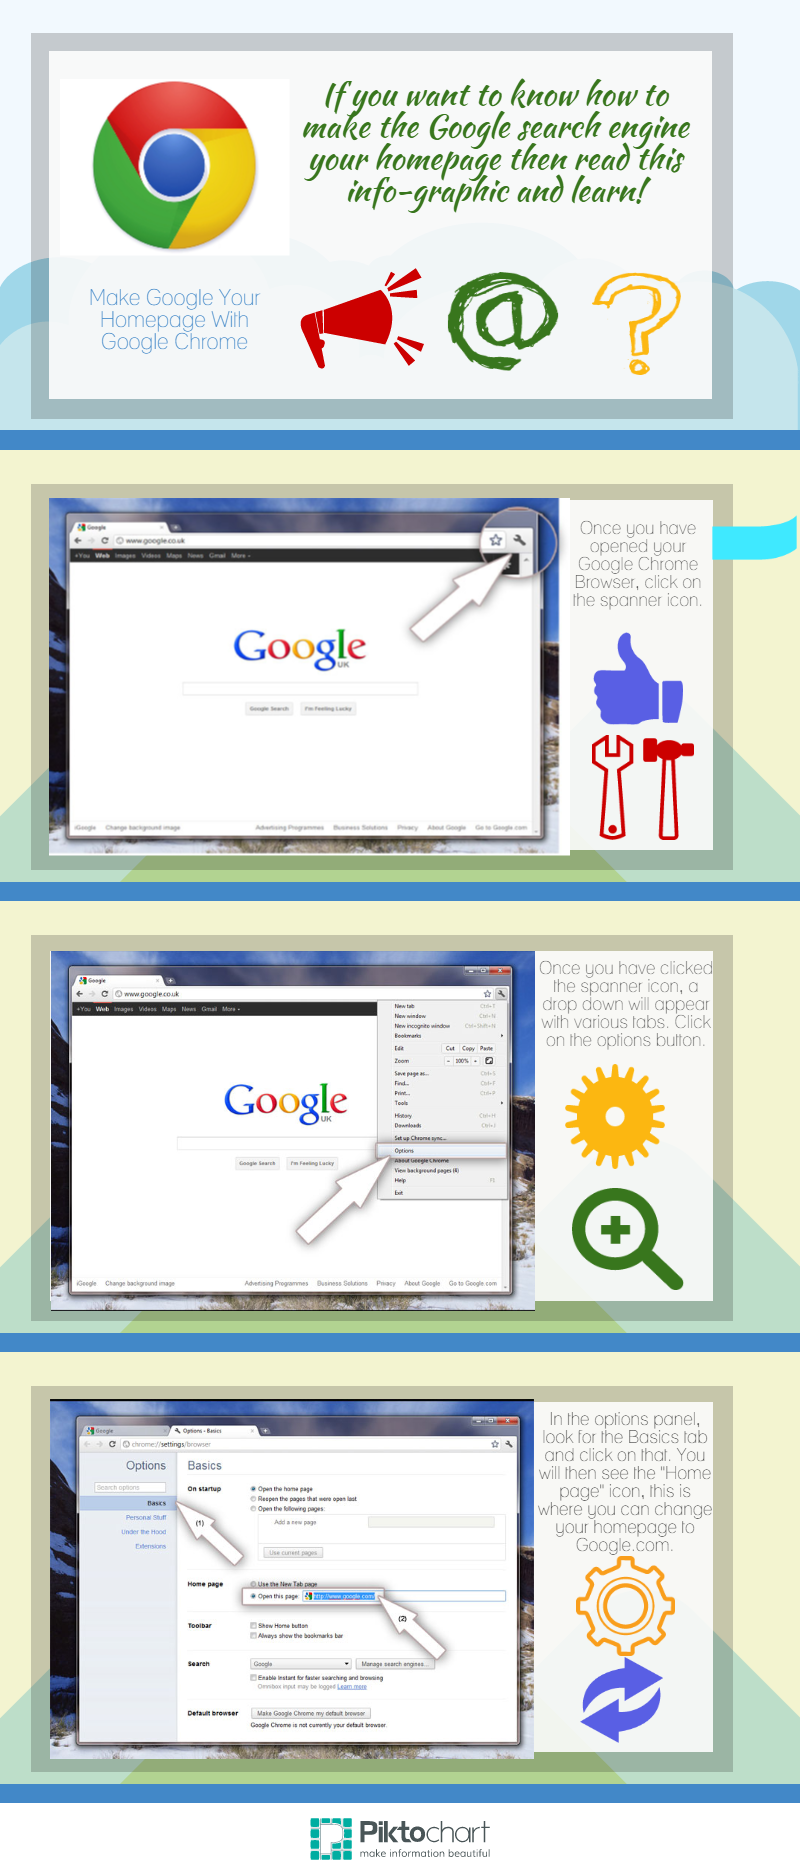 Learn how to make Google your homepage with Google Chrome  | Make